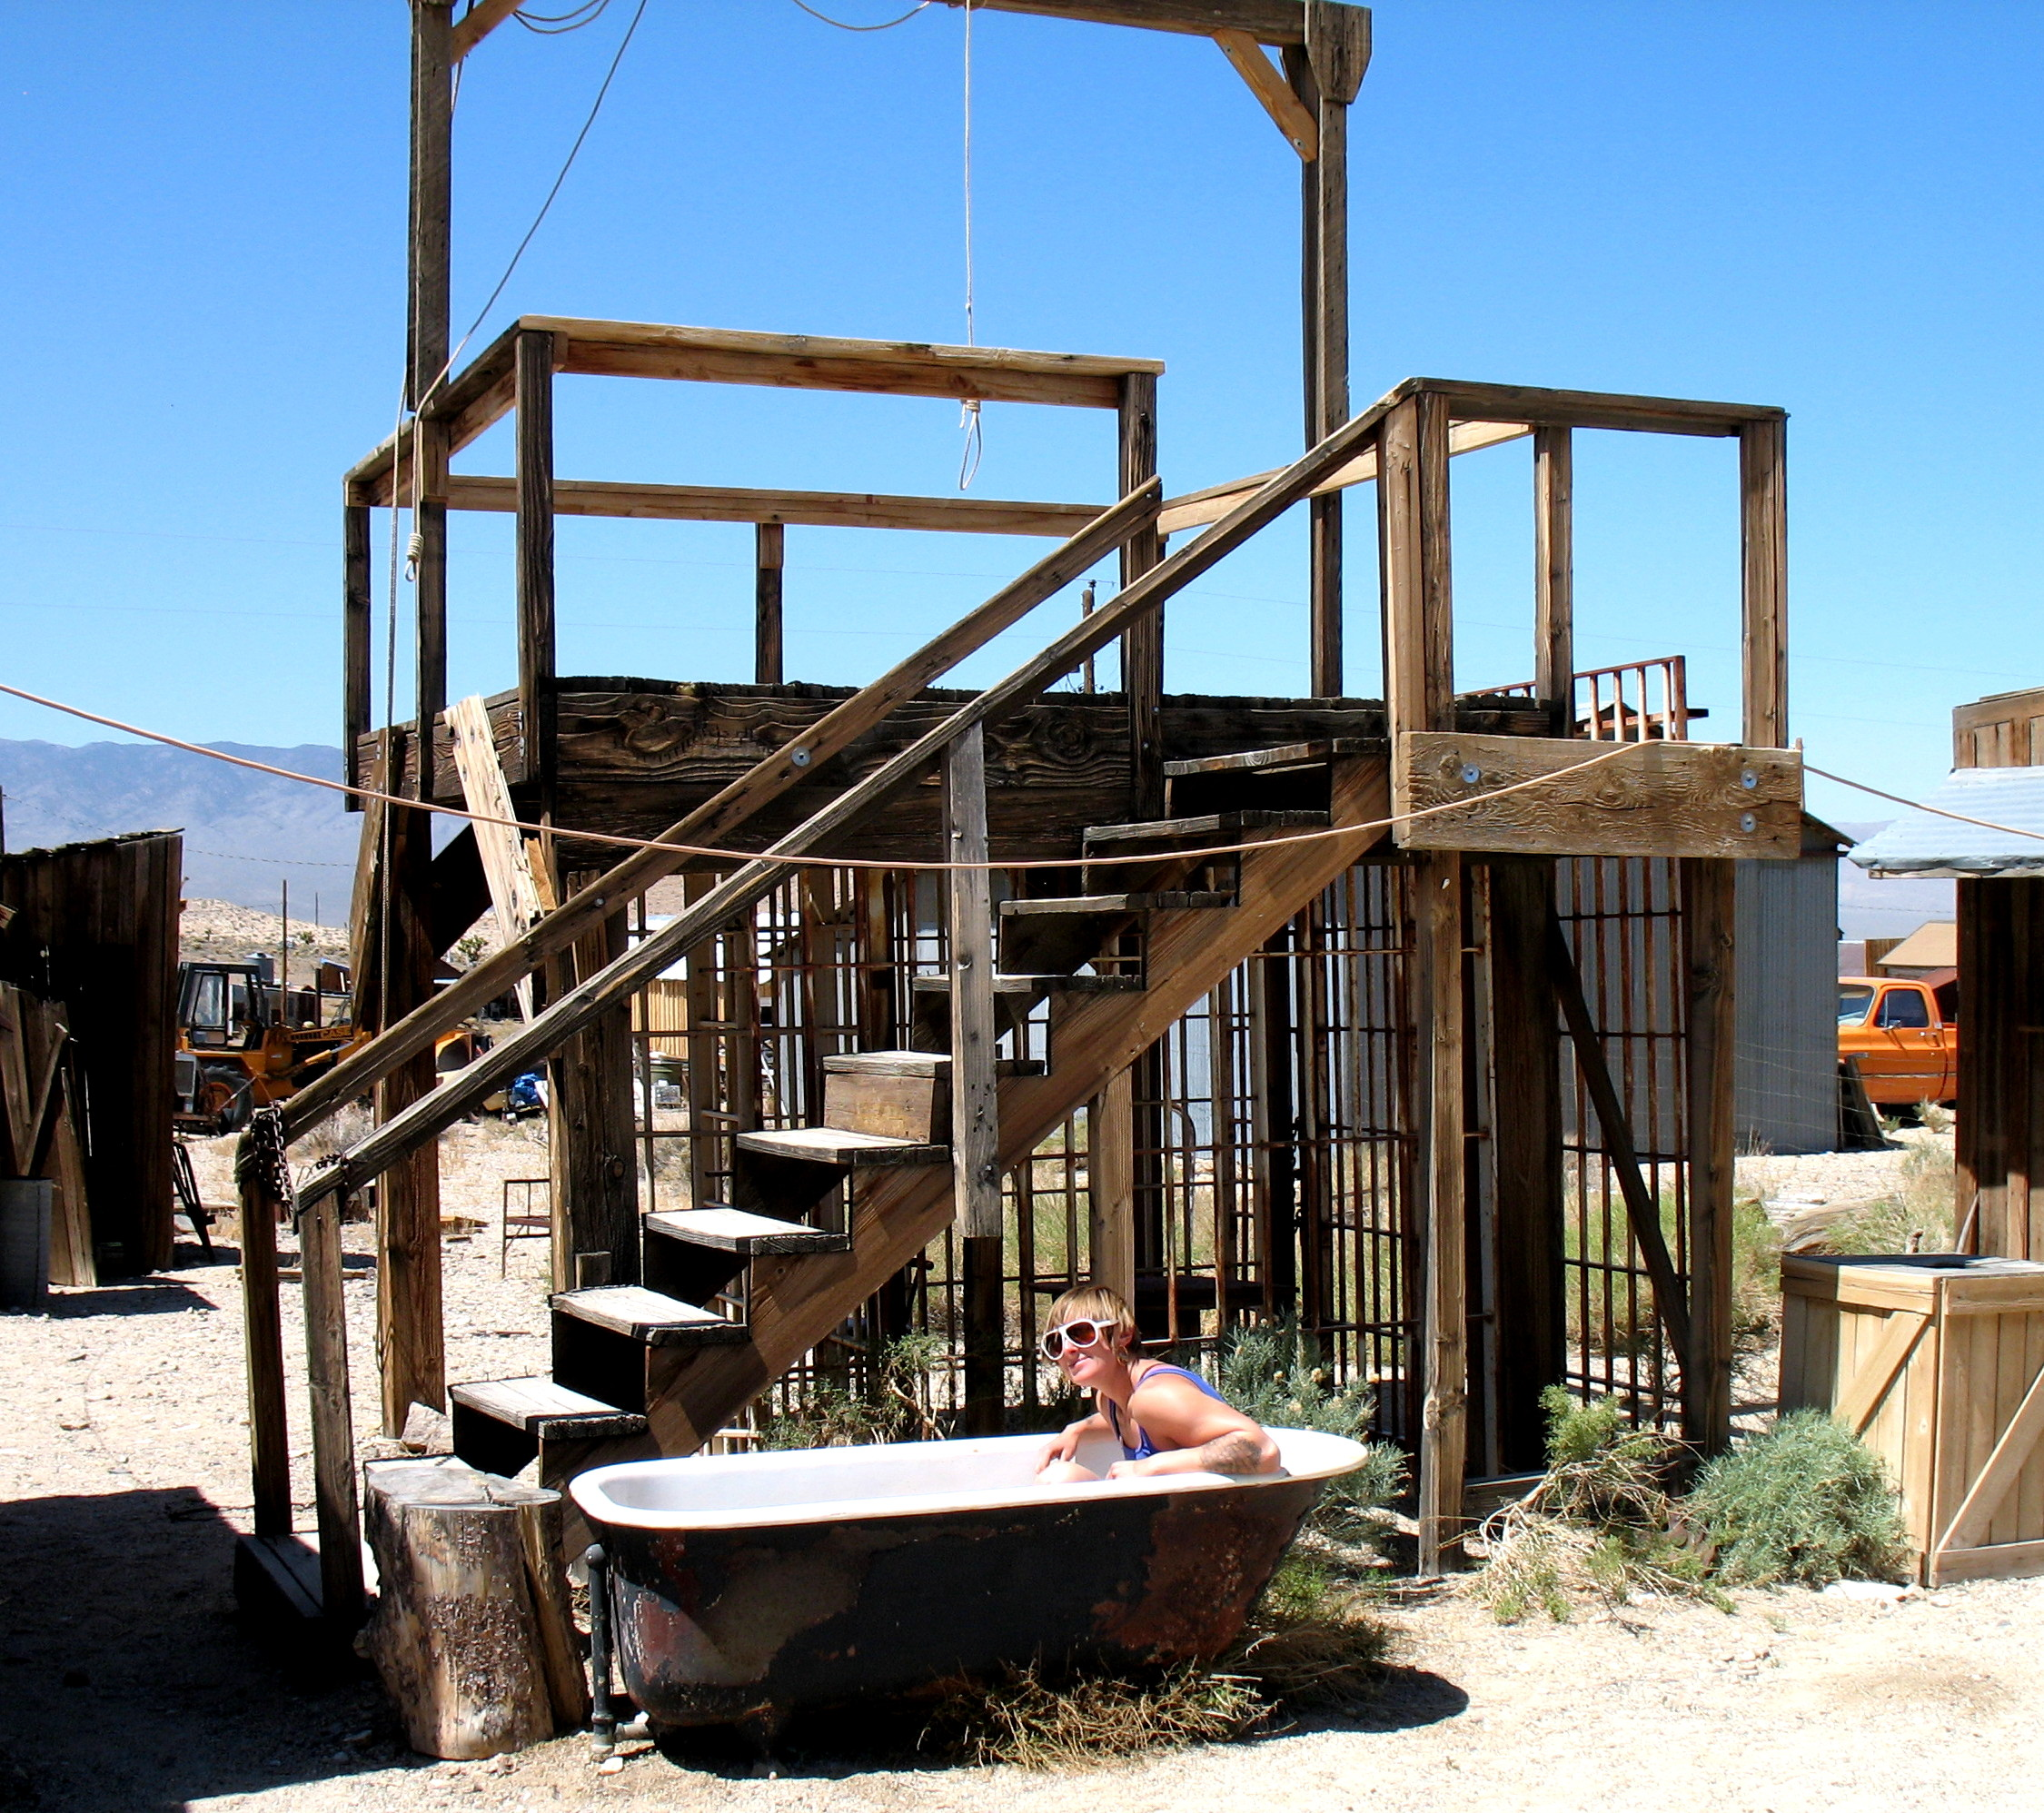 10 Things You Never Knew About Ghost Towns… #3 Will Blow